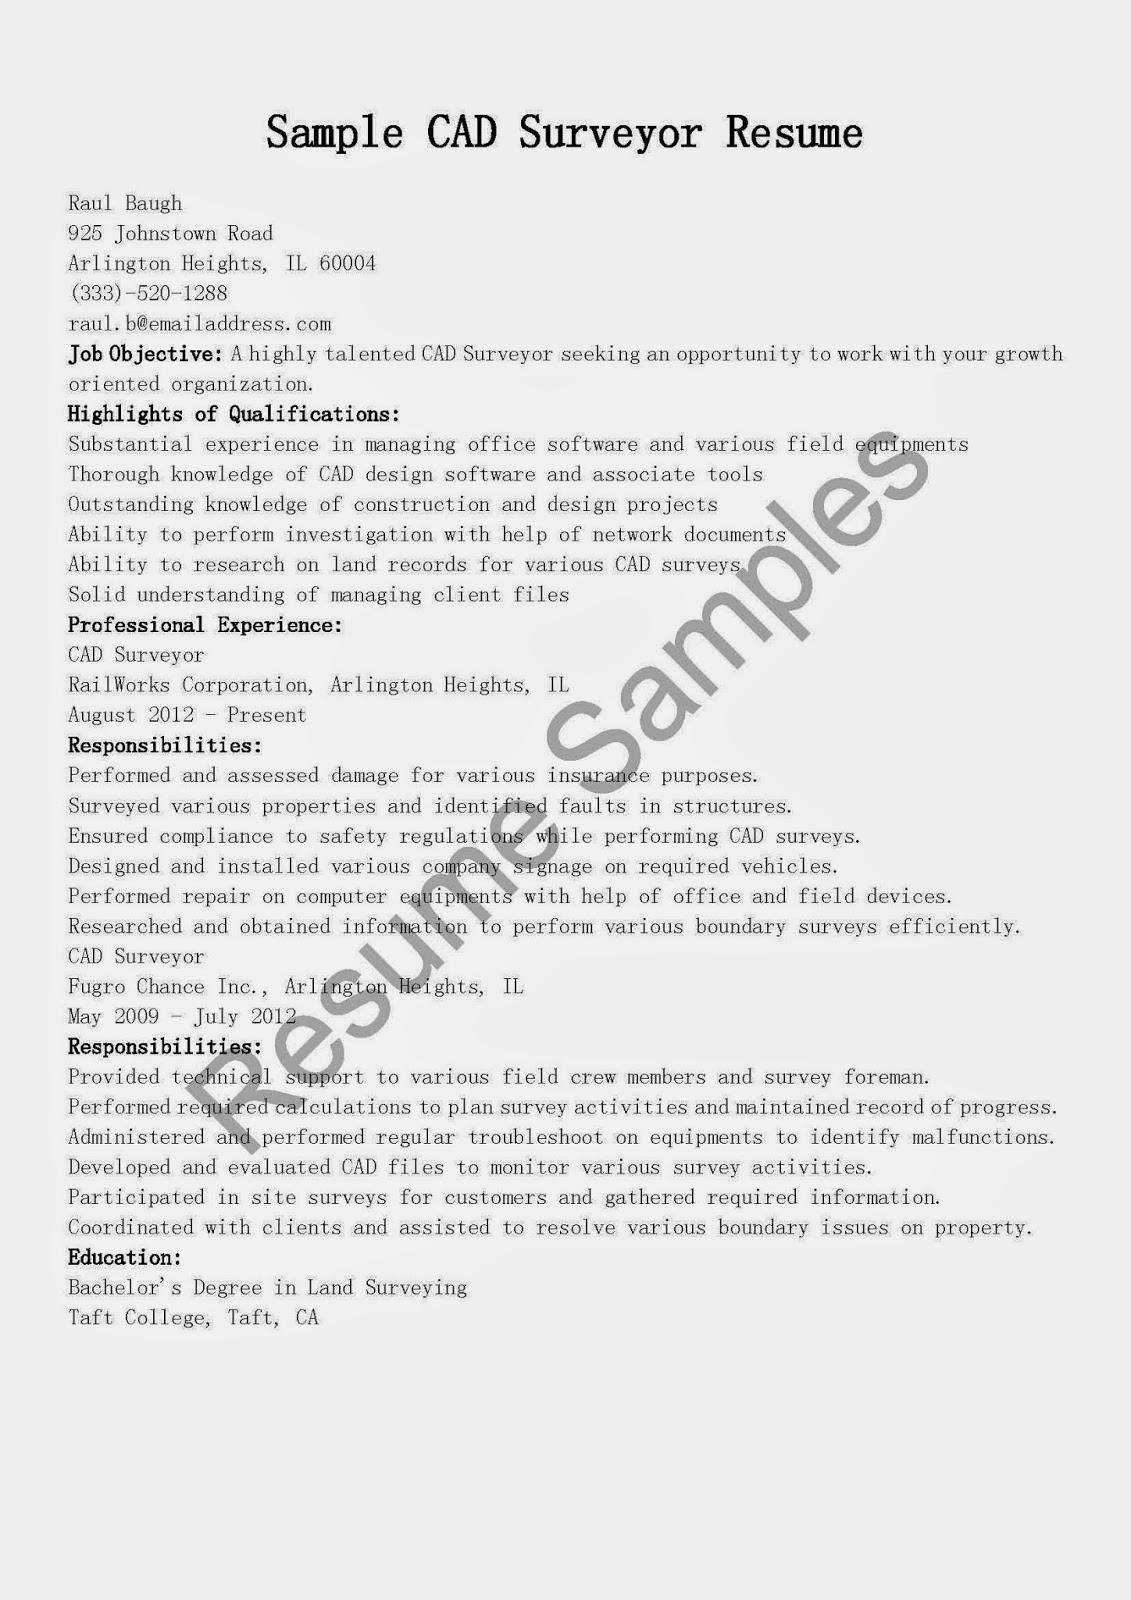 resume sles cad surveyor resume sle